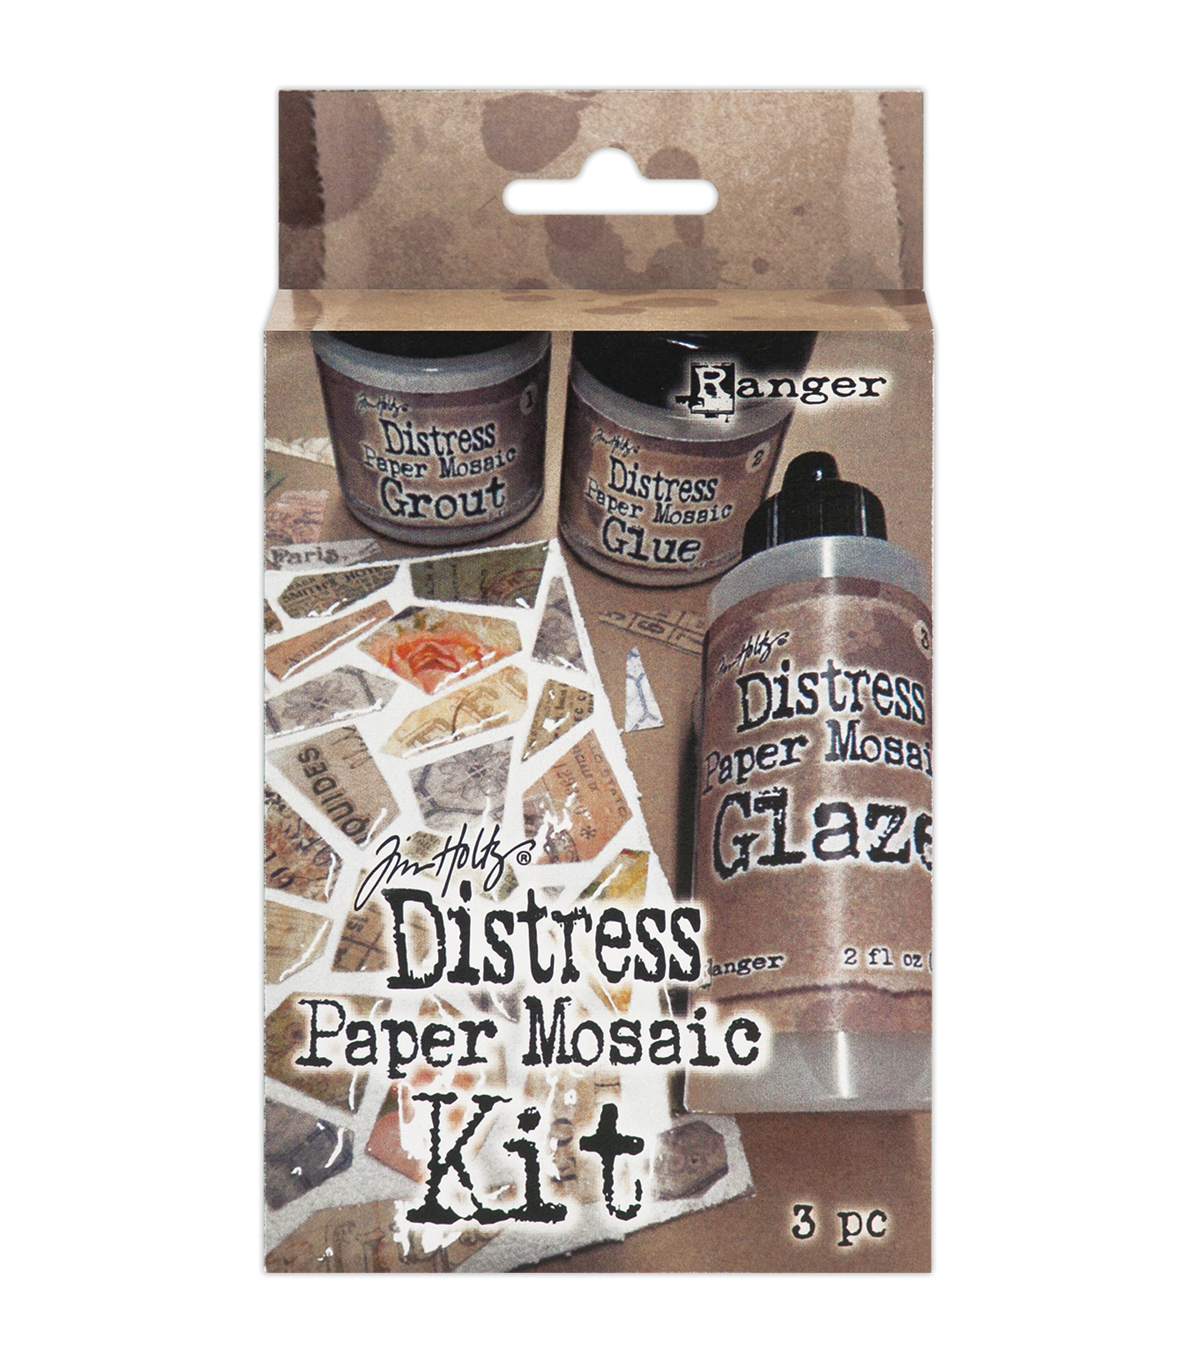 Tim Holtz Distress Paper Mosaic Kit